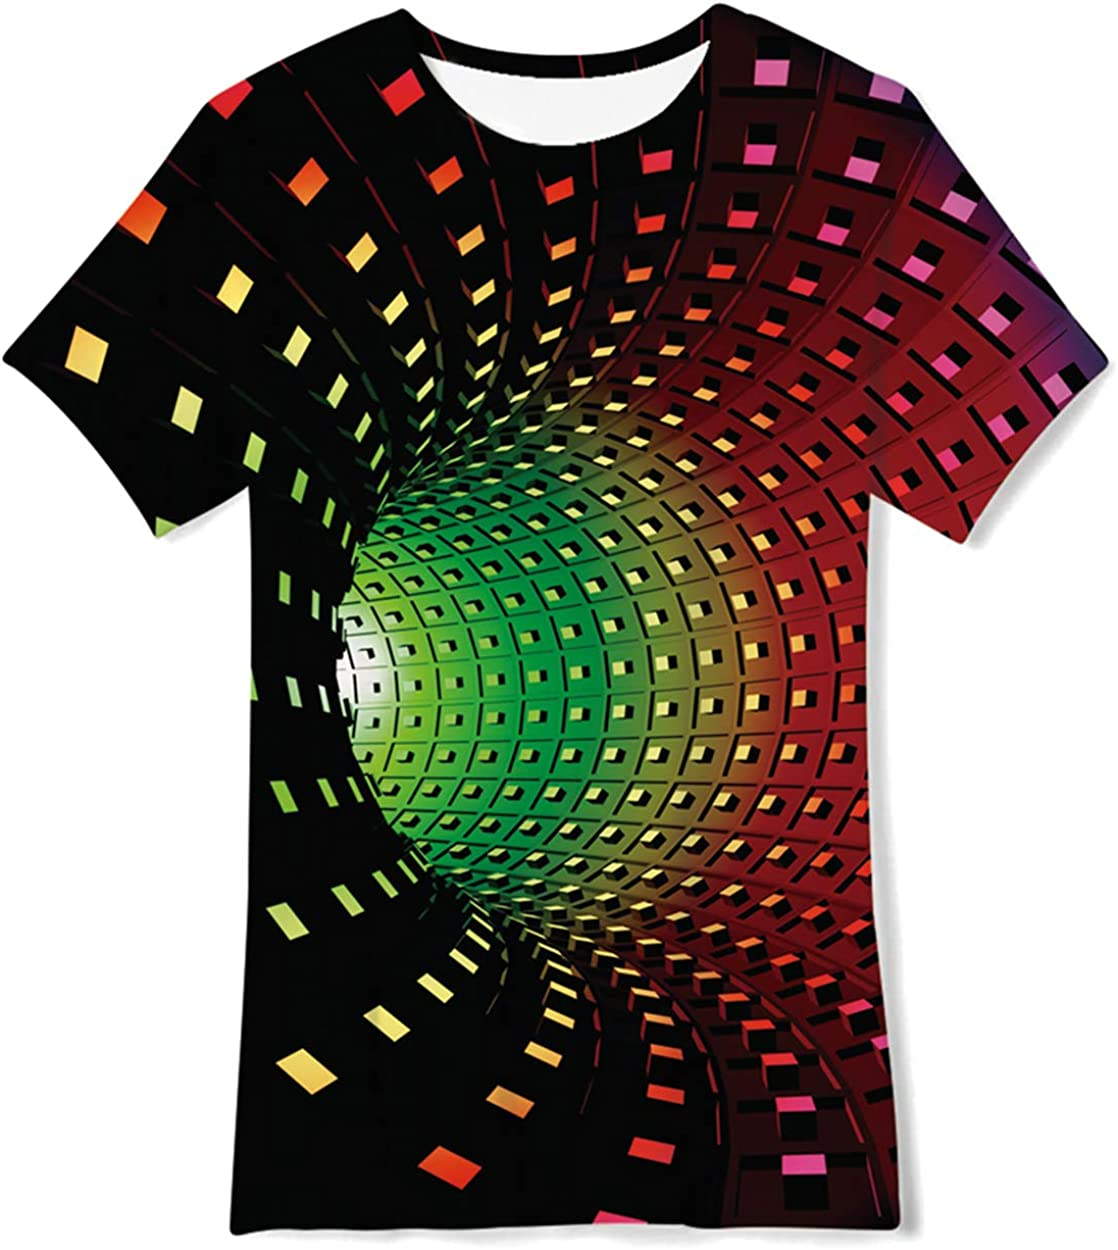 uideazone Boys Girls 3D Graphic Printed T-Shirt Crewneck Short Sleeve Tees 6-14 Years